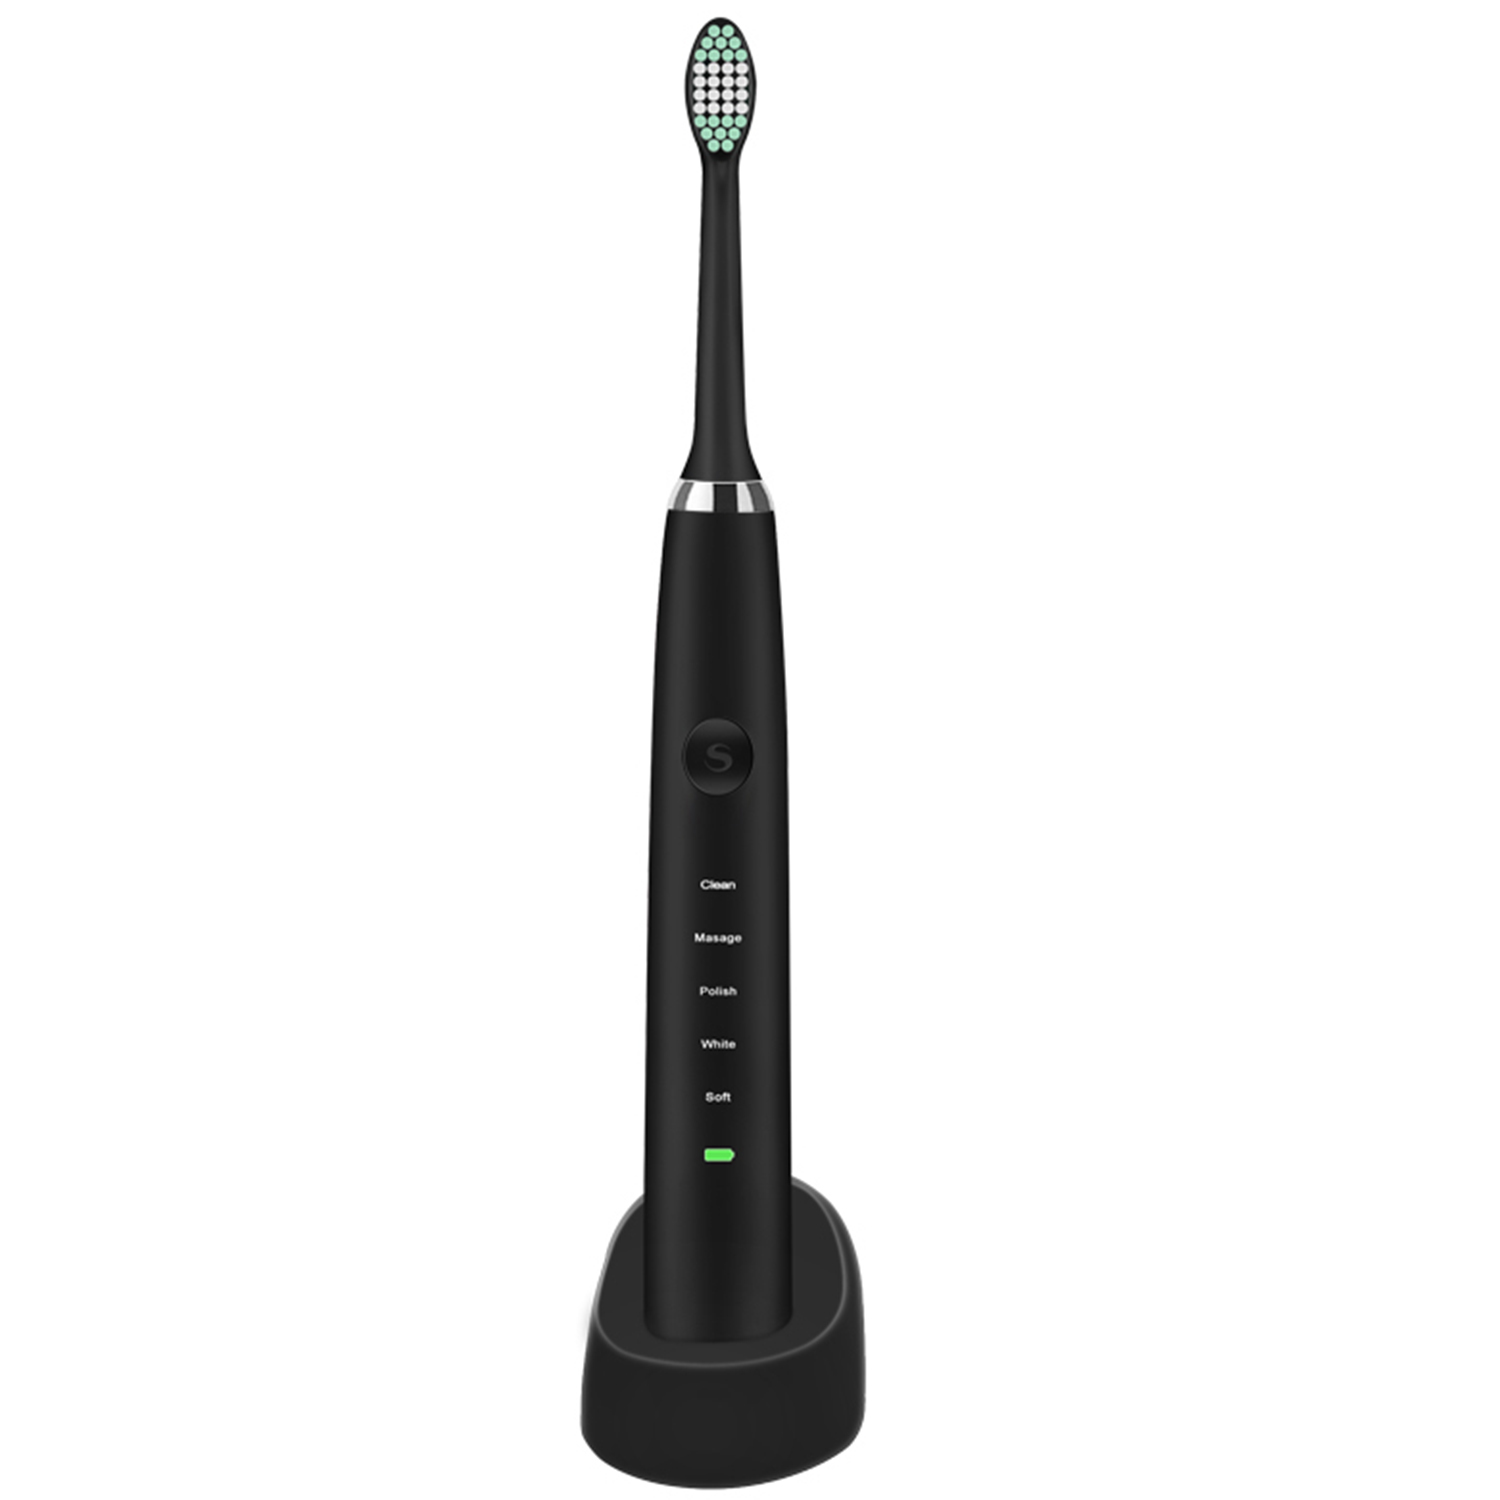 USB rechargeable electric toothbrush Sonic vibrating electric toothbrush IPX7 waterproof electric toothbrush-EDS7000+ soocas x3 sonic electric toothbrush